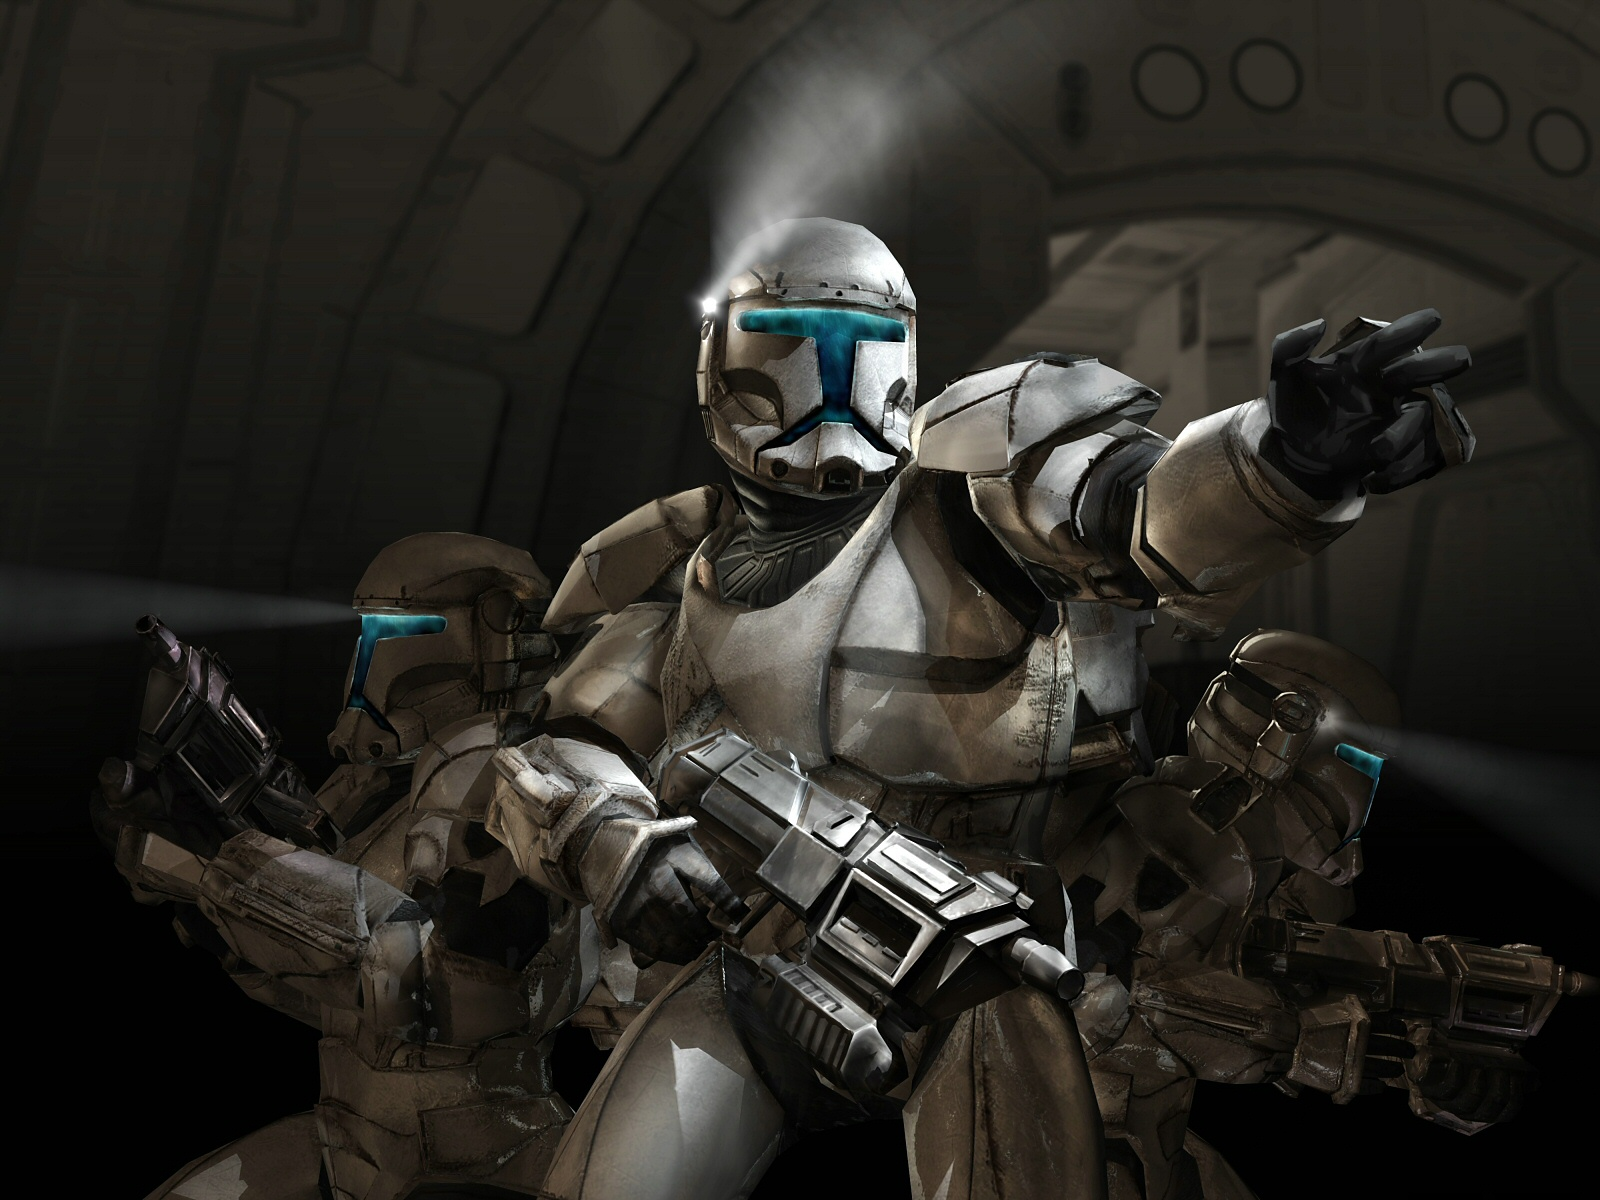 Star Wars Commando Wallpaper